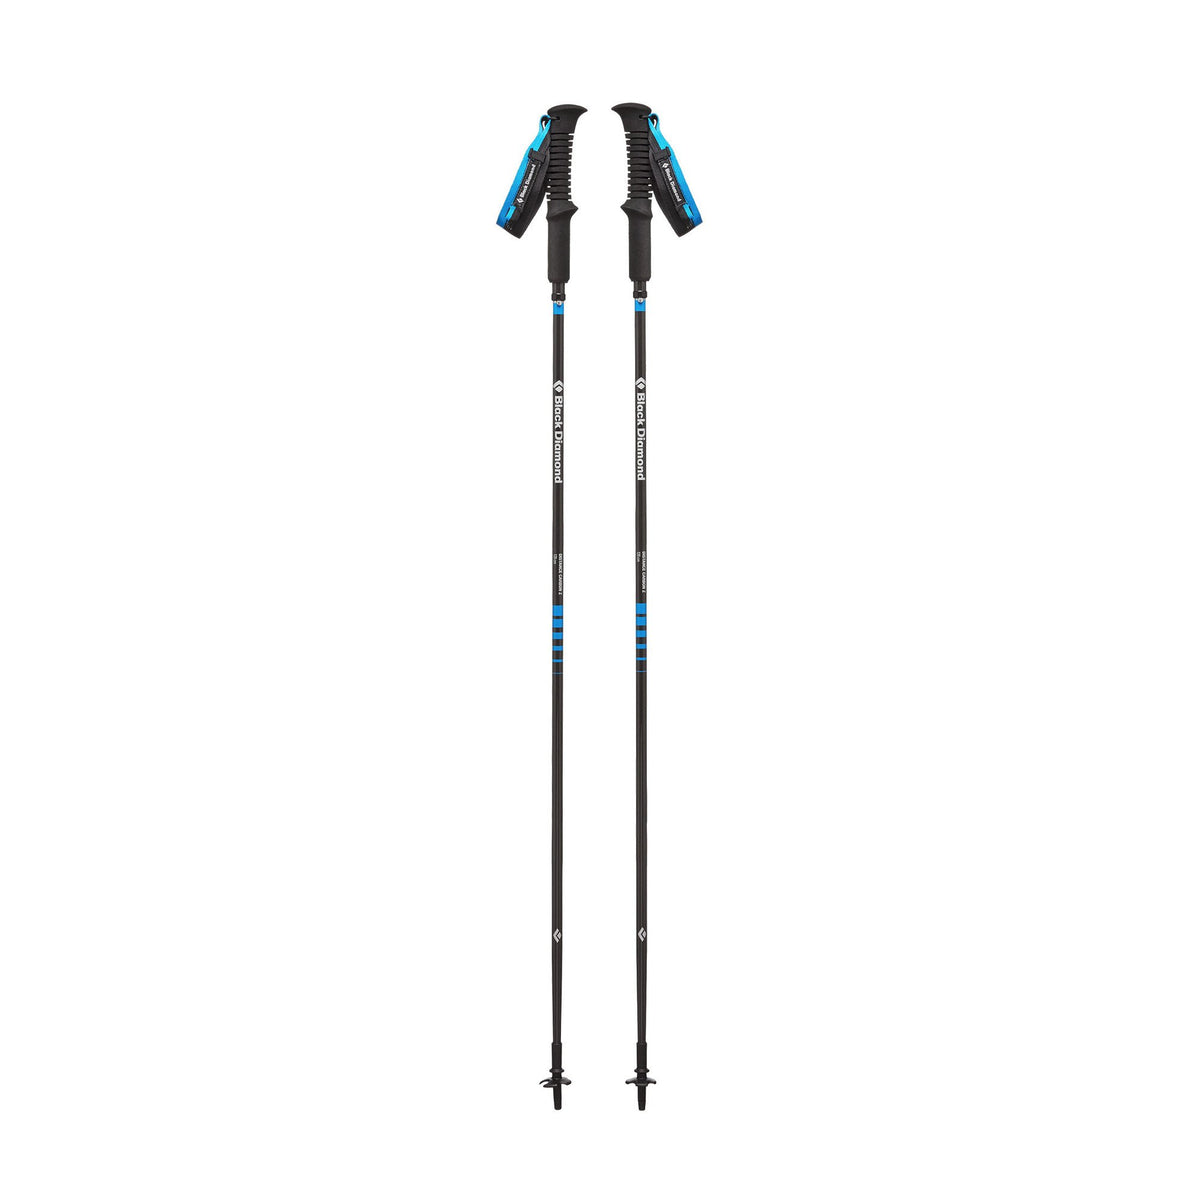 Pair of Black Diamond Distance Carbon FLZ poles shown fully extended and stood upright